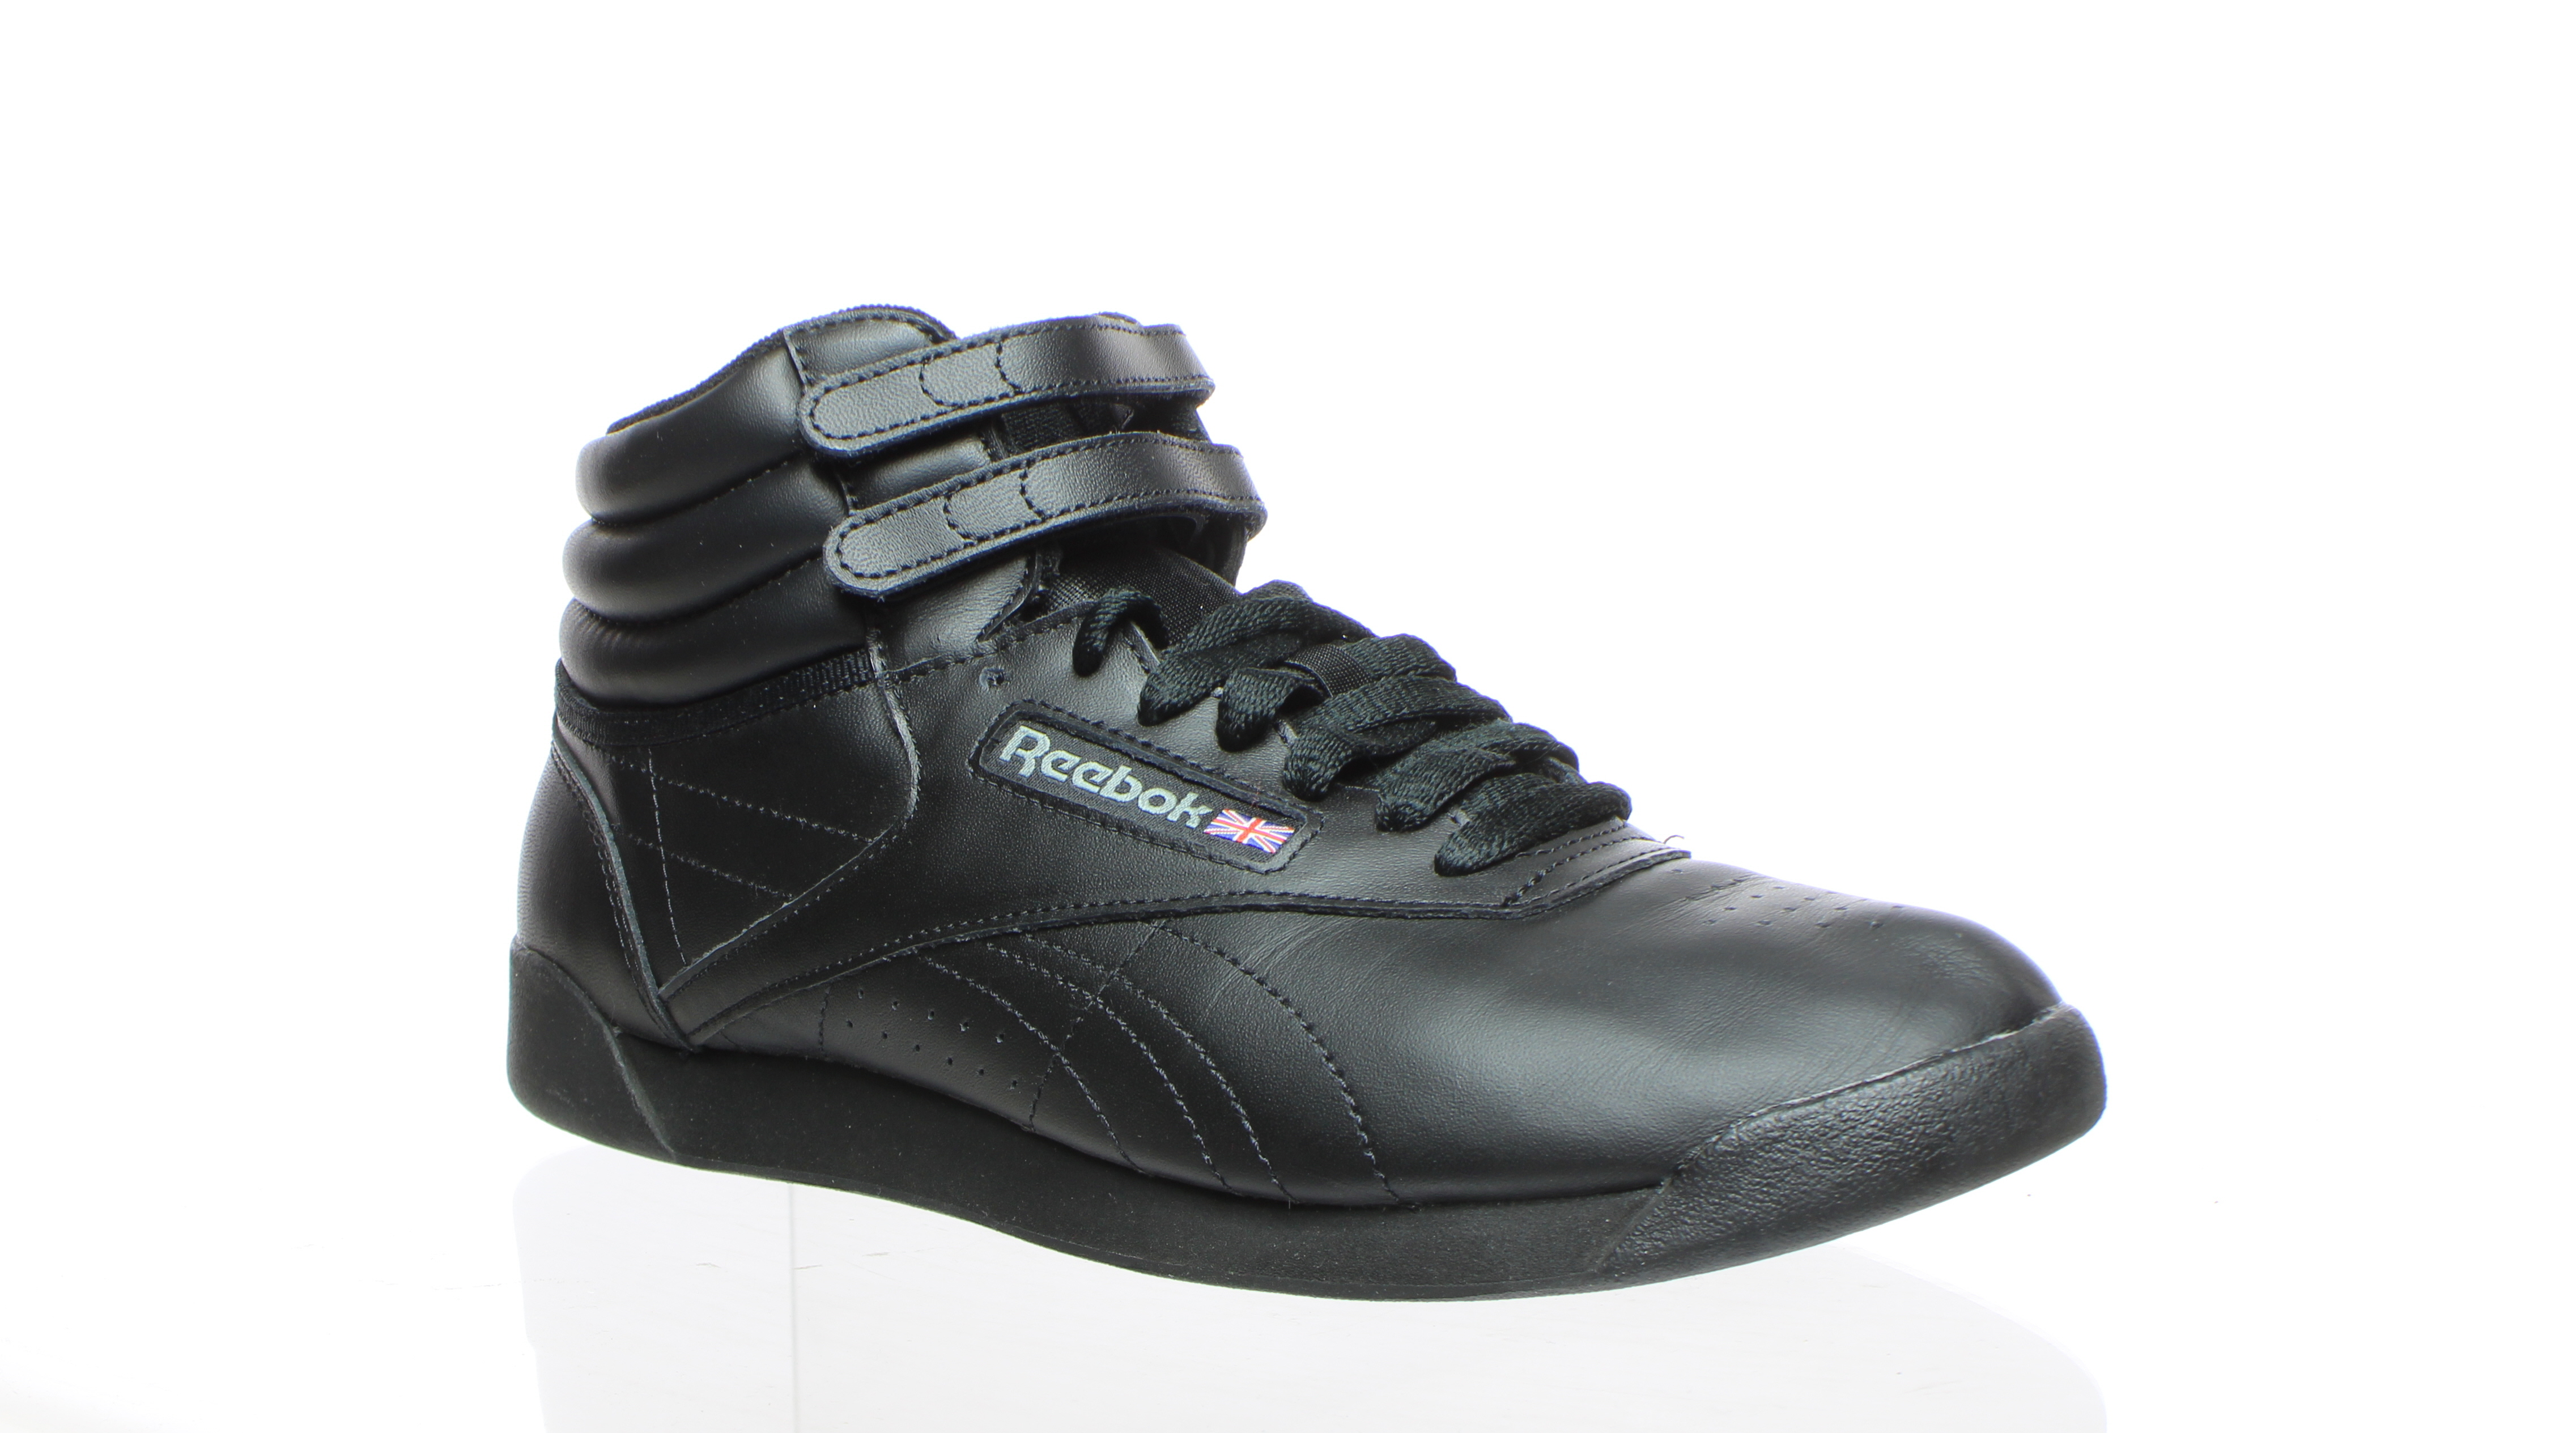 Details about Reebok Womens Freestyle Hi W Black Walking Shoes Size 8.5 (355968)